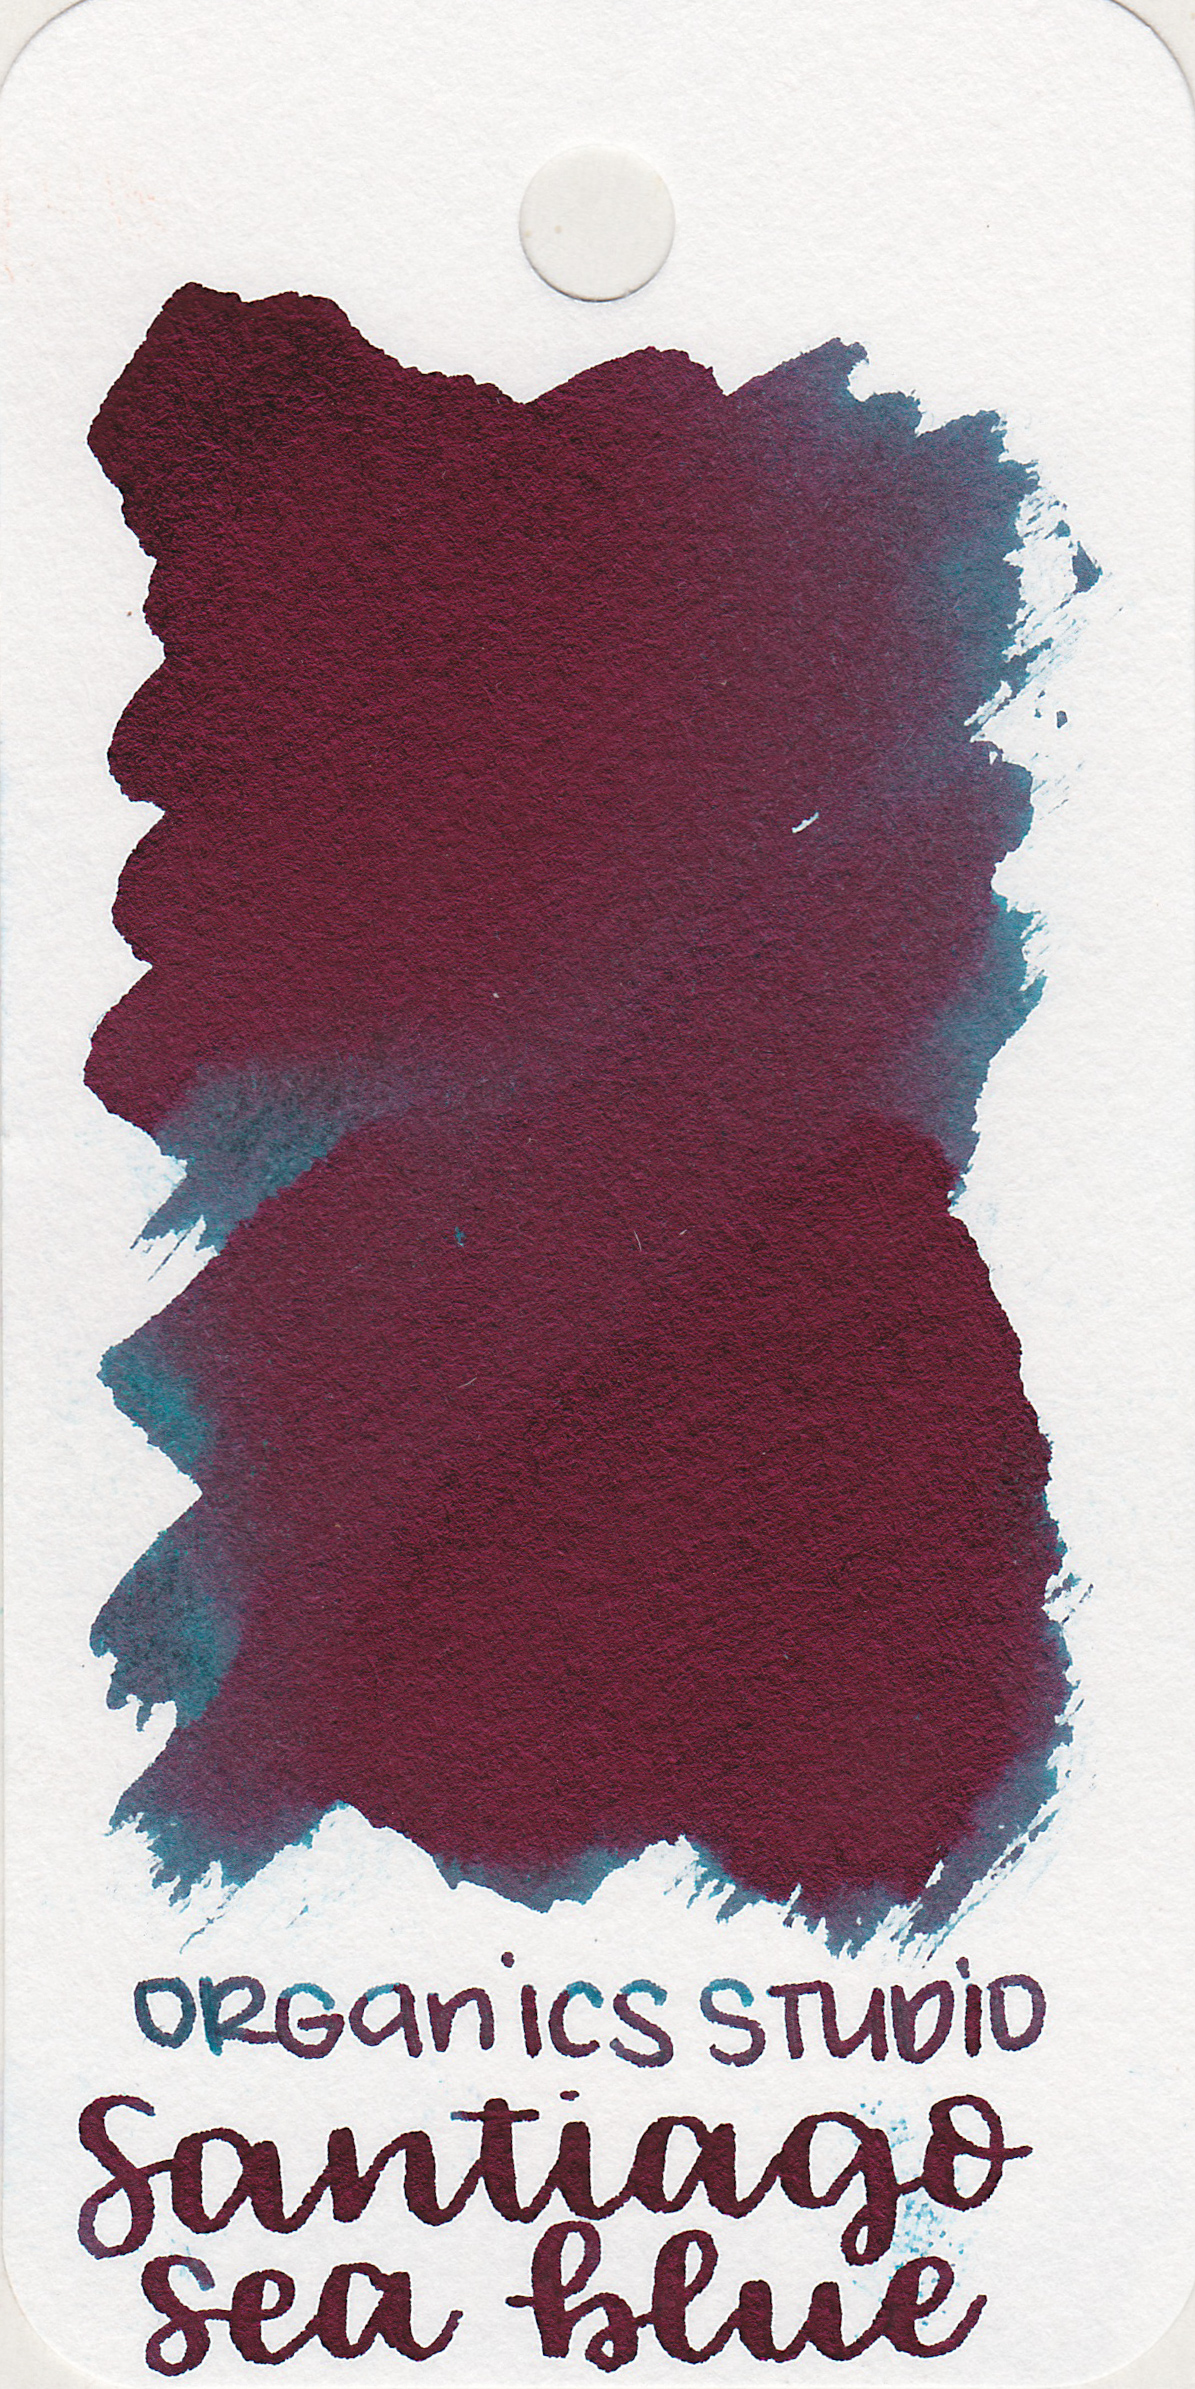 The color: - Santiago Sea Blue is a dark teal with pink sheen, or more accurately, it's a pink sheen with a dark teal undertone.